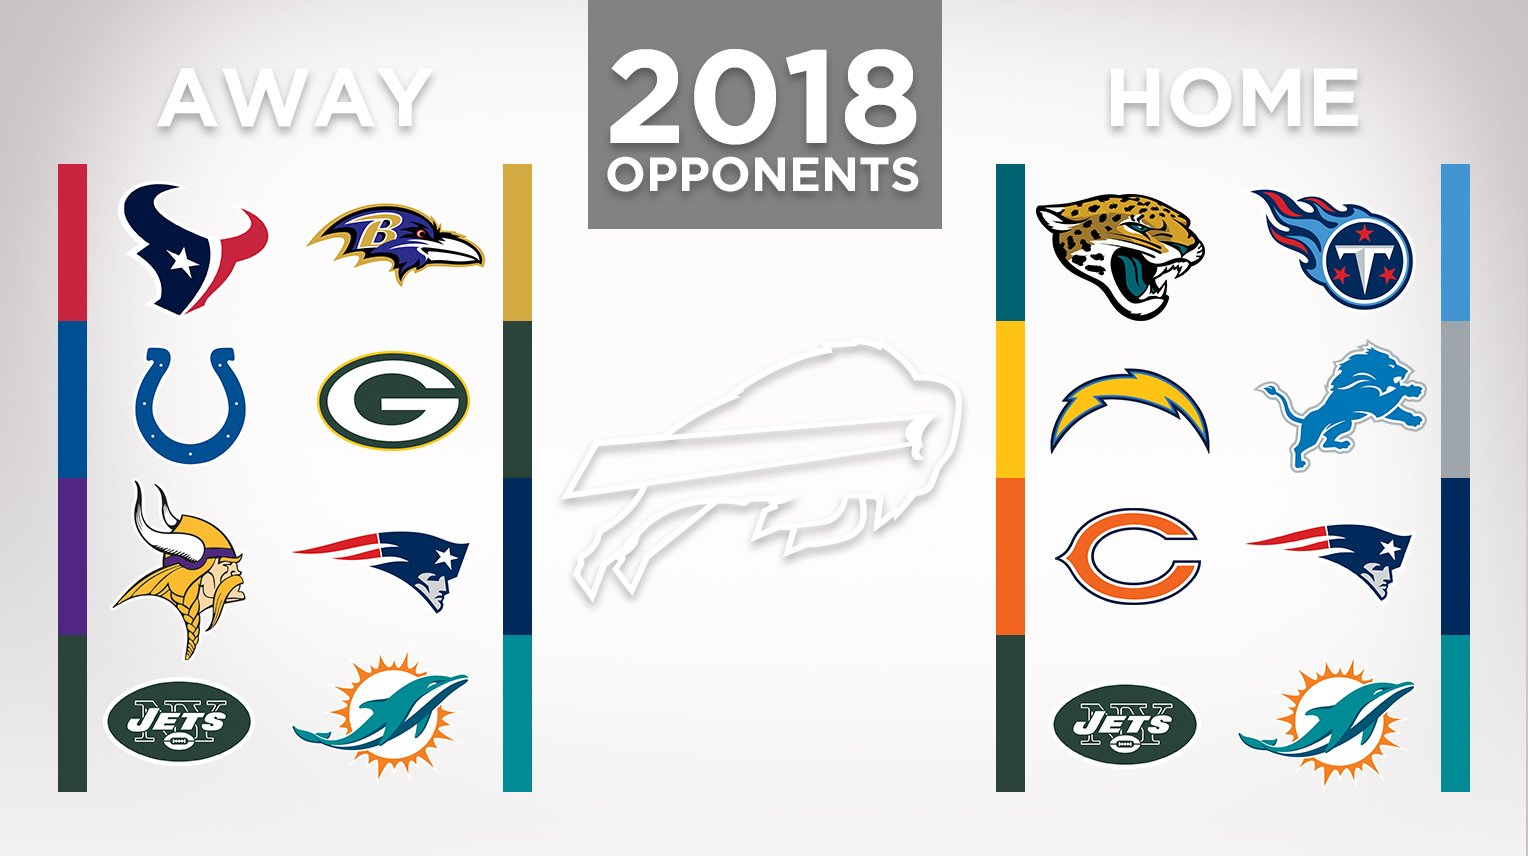 Our 2018 opponents are set. #GoBills  Which game are you most excited for? https://t.co/dyucAxOh3l